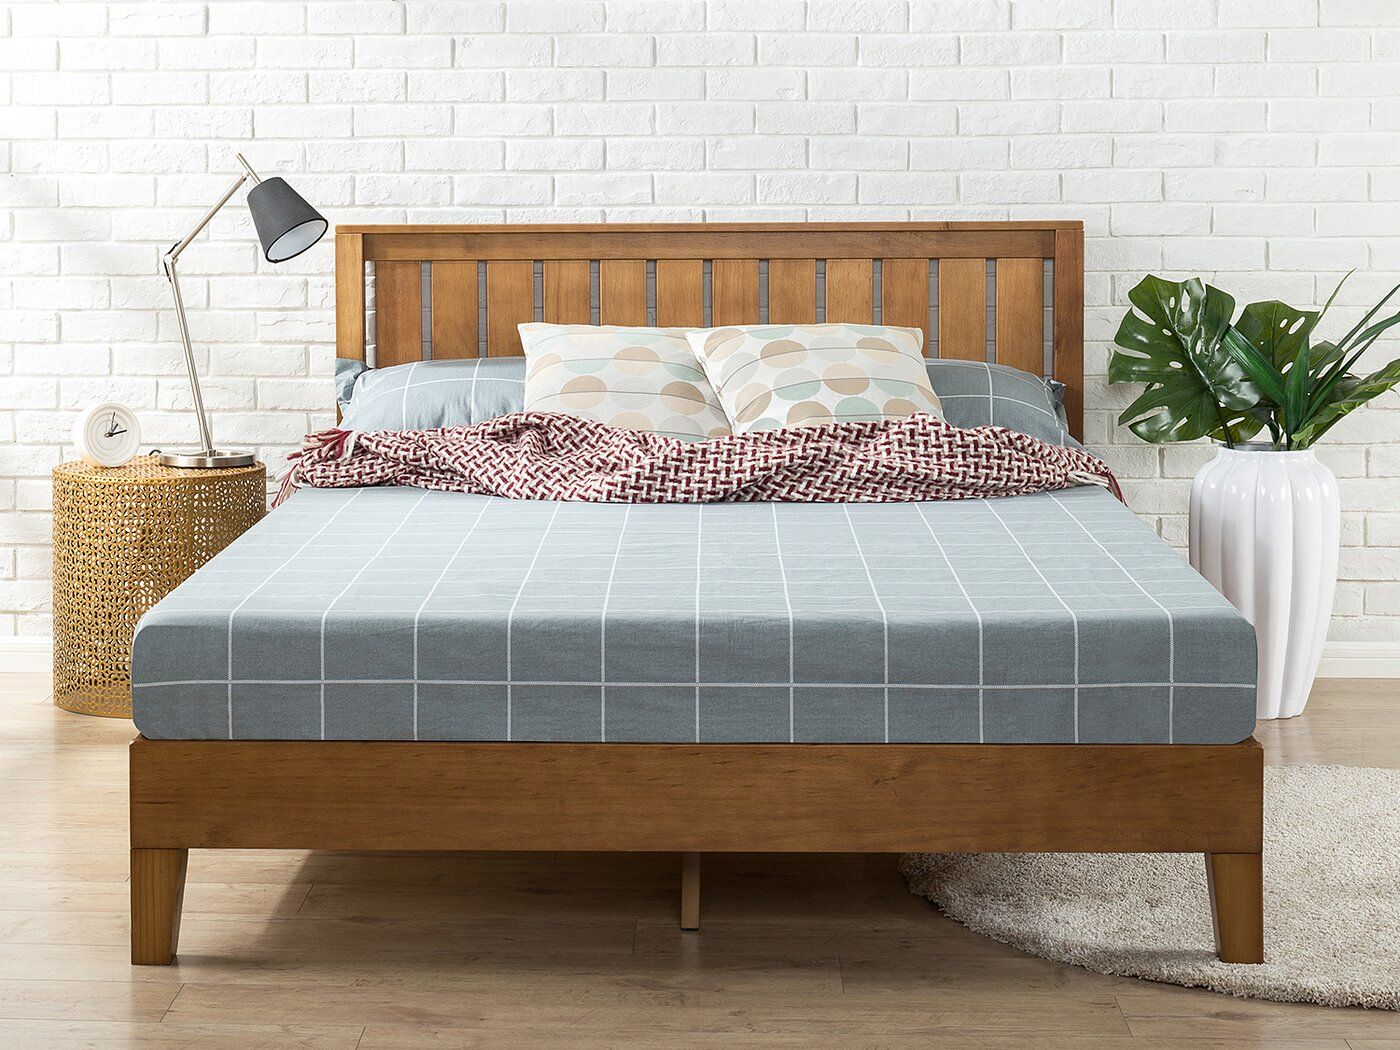 Hill Platform Bed Solid wood platform bed, Bed